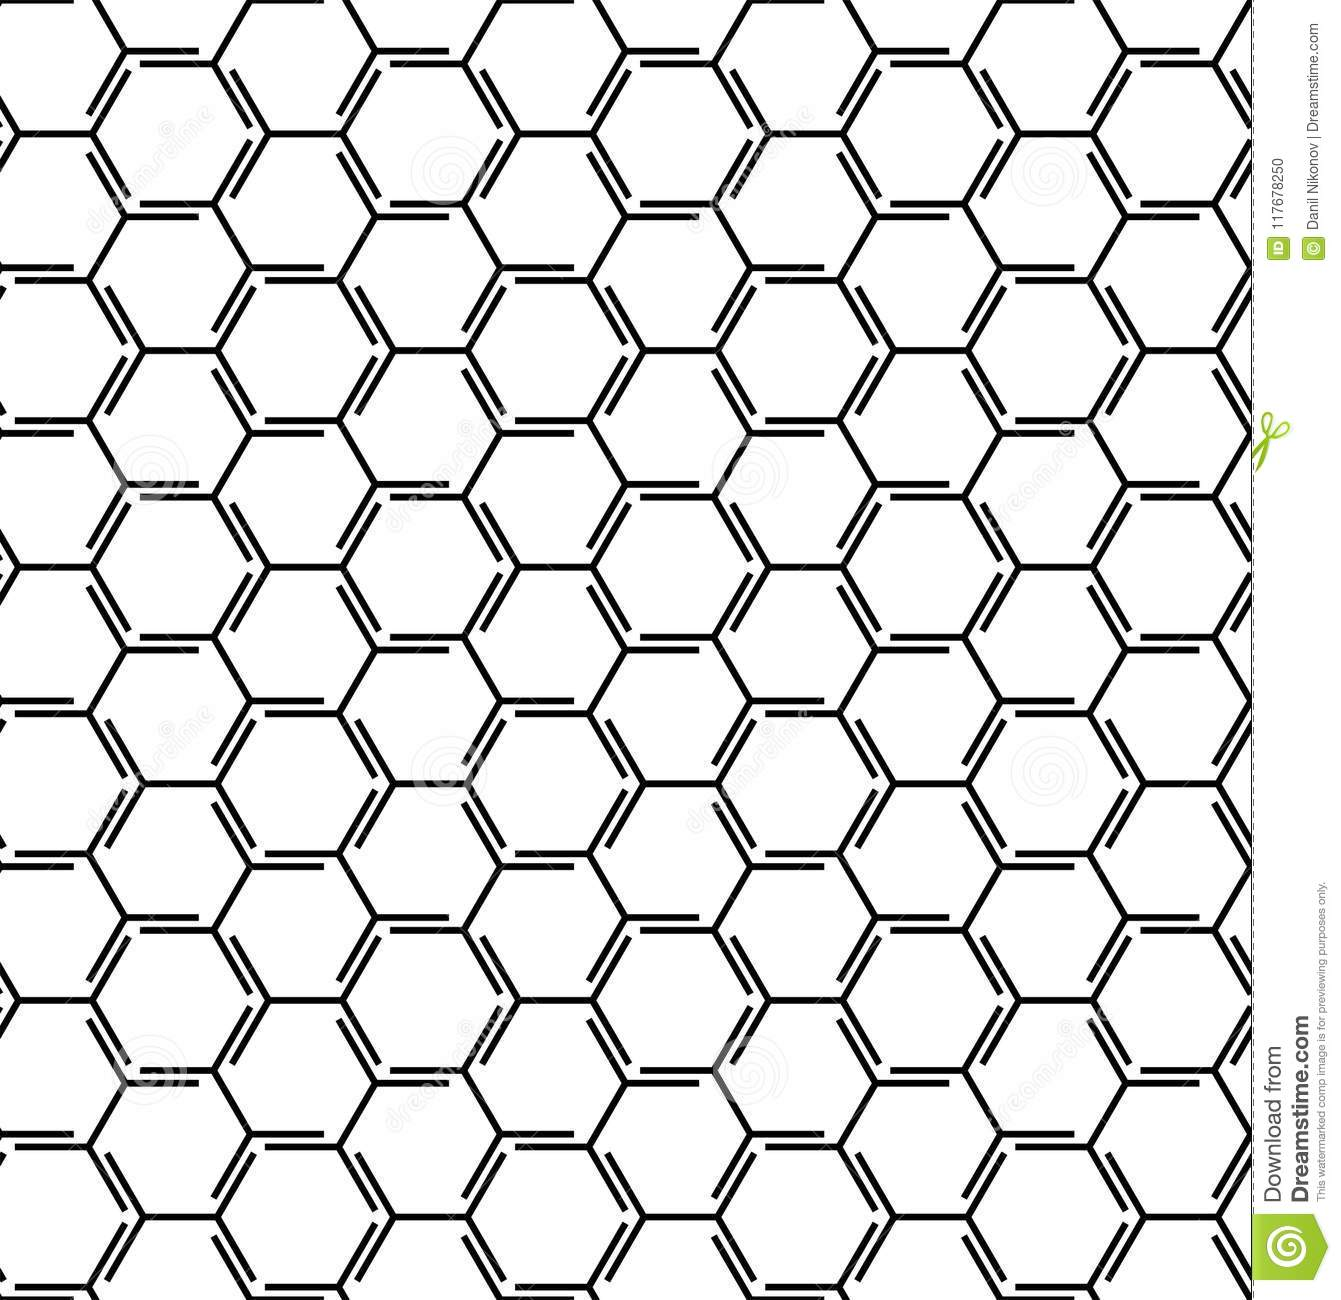 Abstract Geometric Pattern With Lines, Cubes, Hexagons